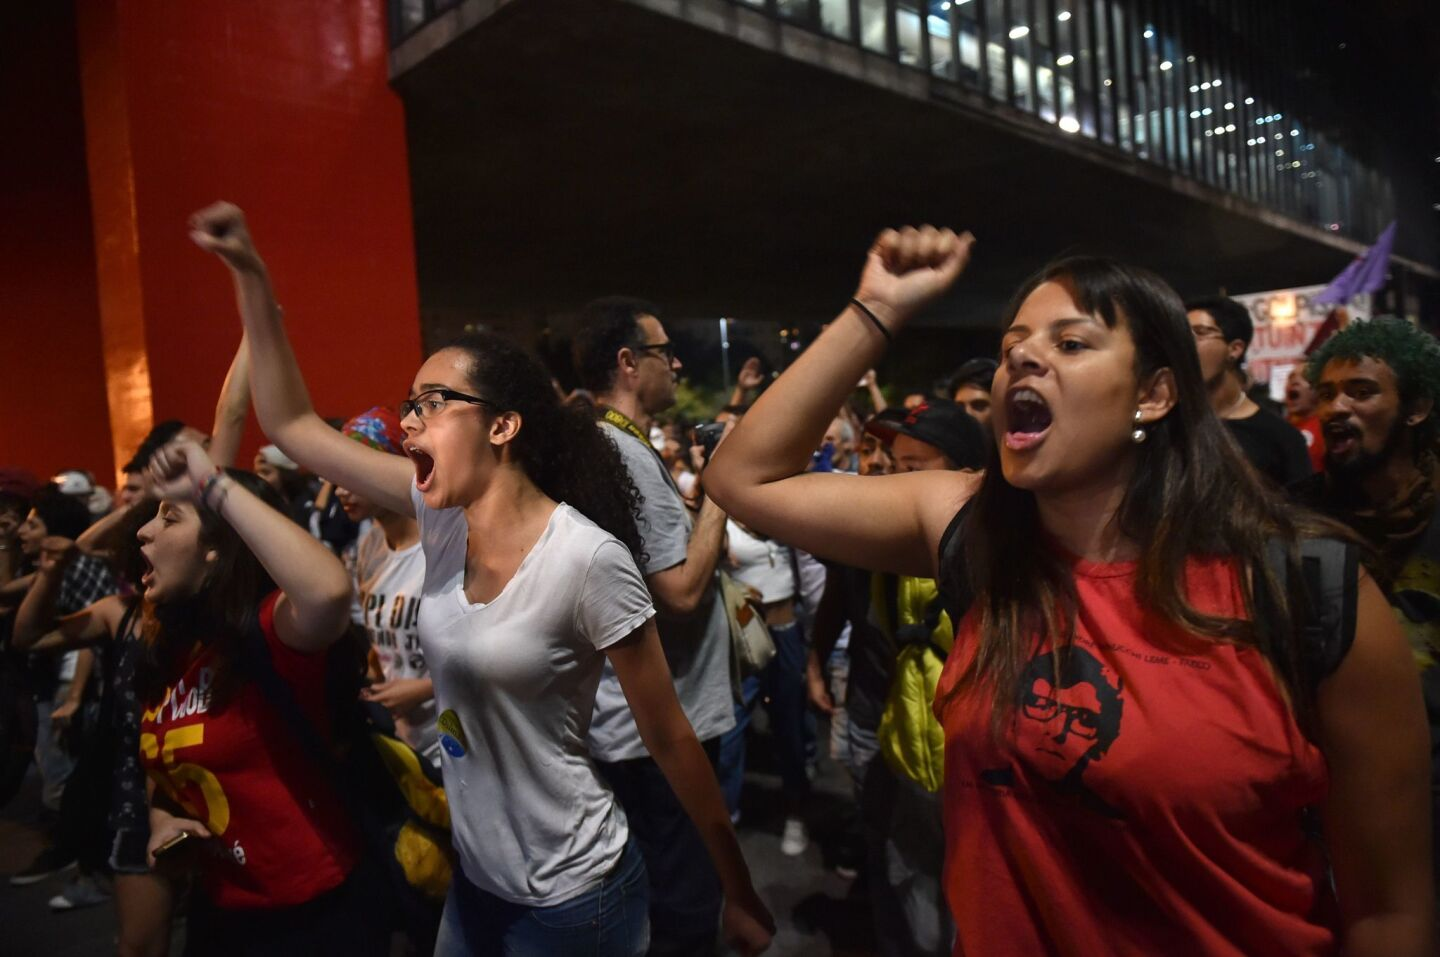 Supporters of suspended Brazilian President Dilma Rousseff protest in Sao Paulo. Brazilian senators engaged in marathon debate Tuesday on the eve of voting on whether to strip Rousseff of the presidency.